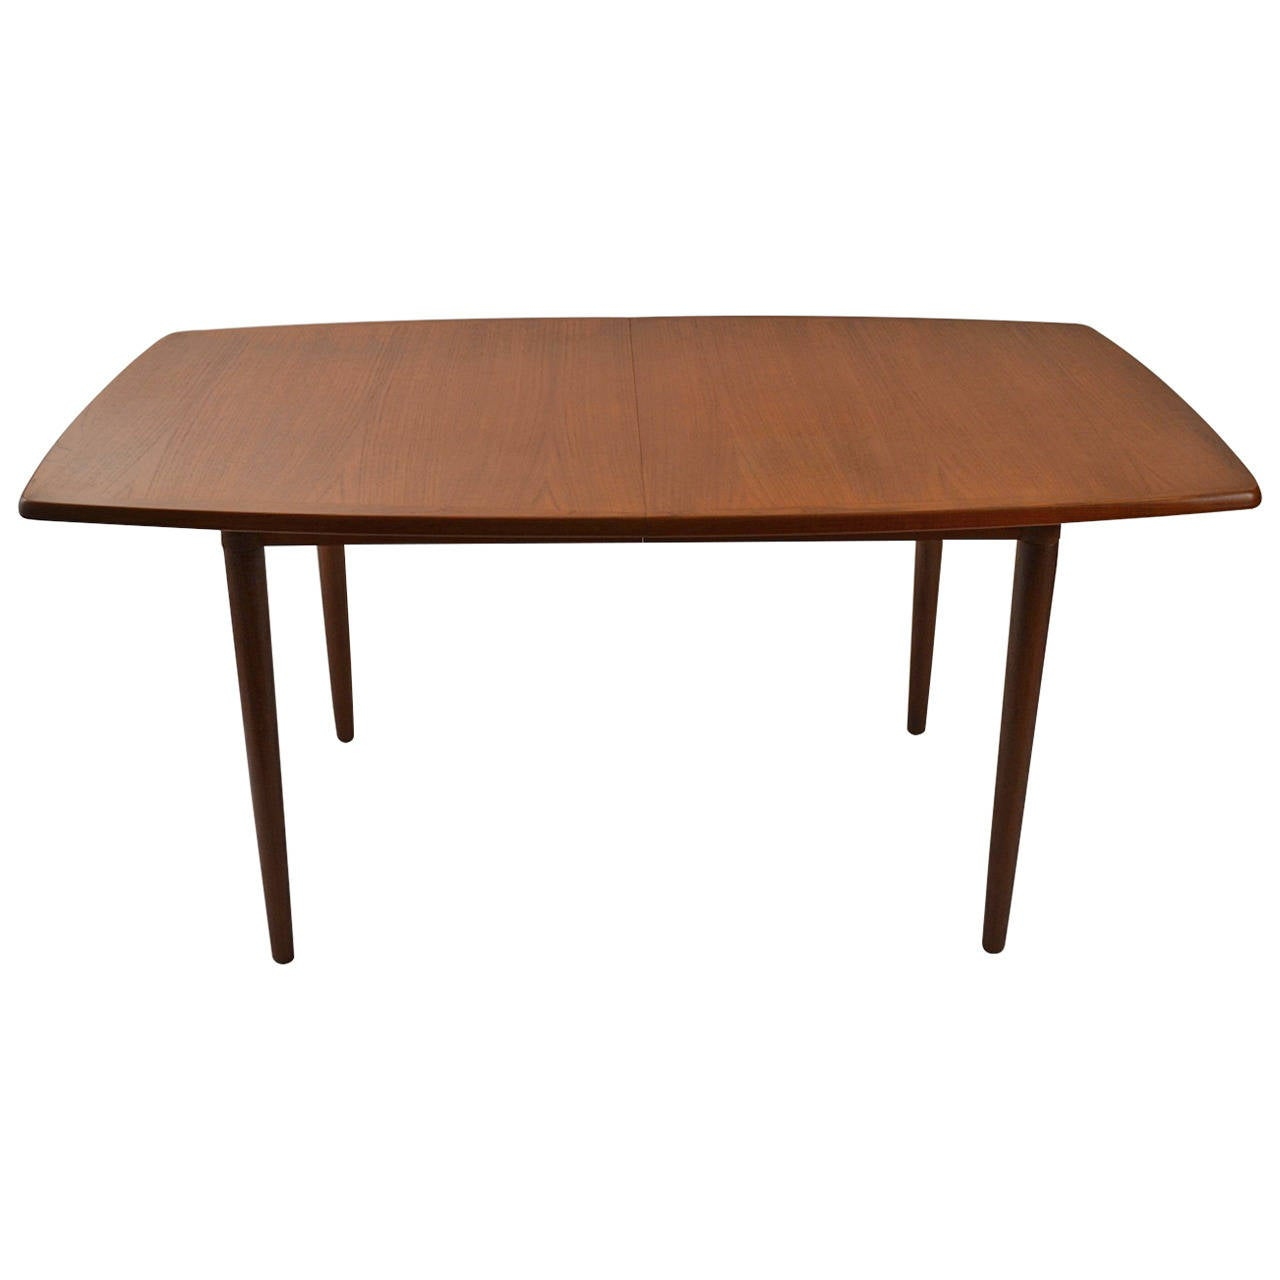 Danish modern teak dining table with two leaves at 1stdibs for Dining room table 2